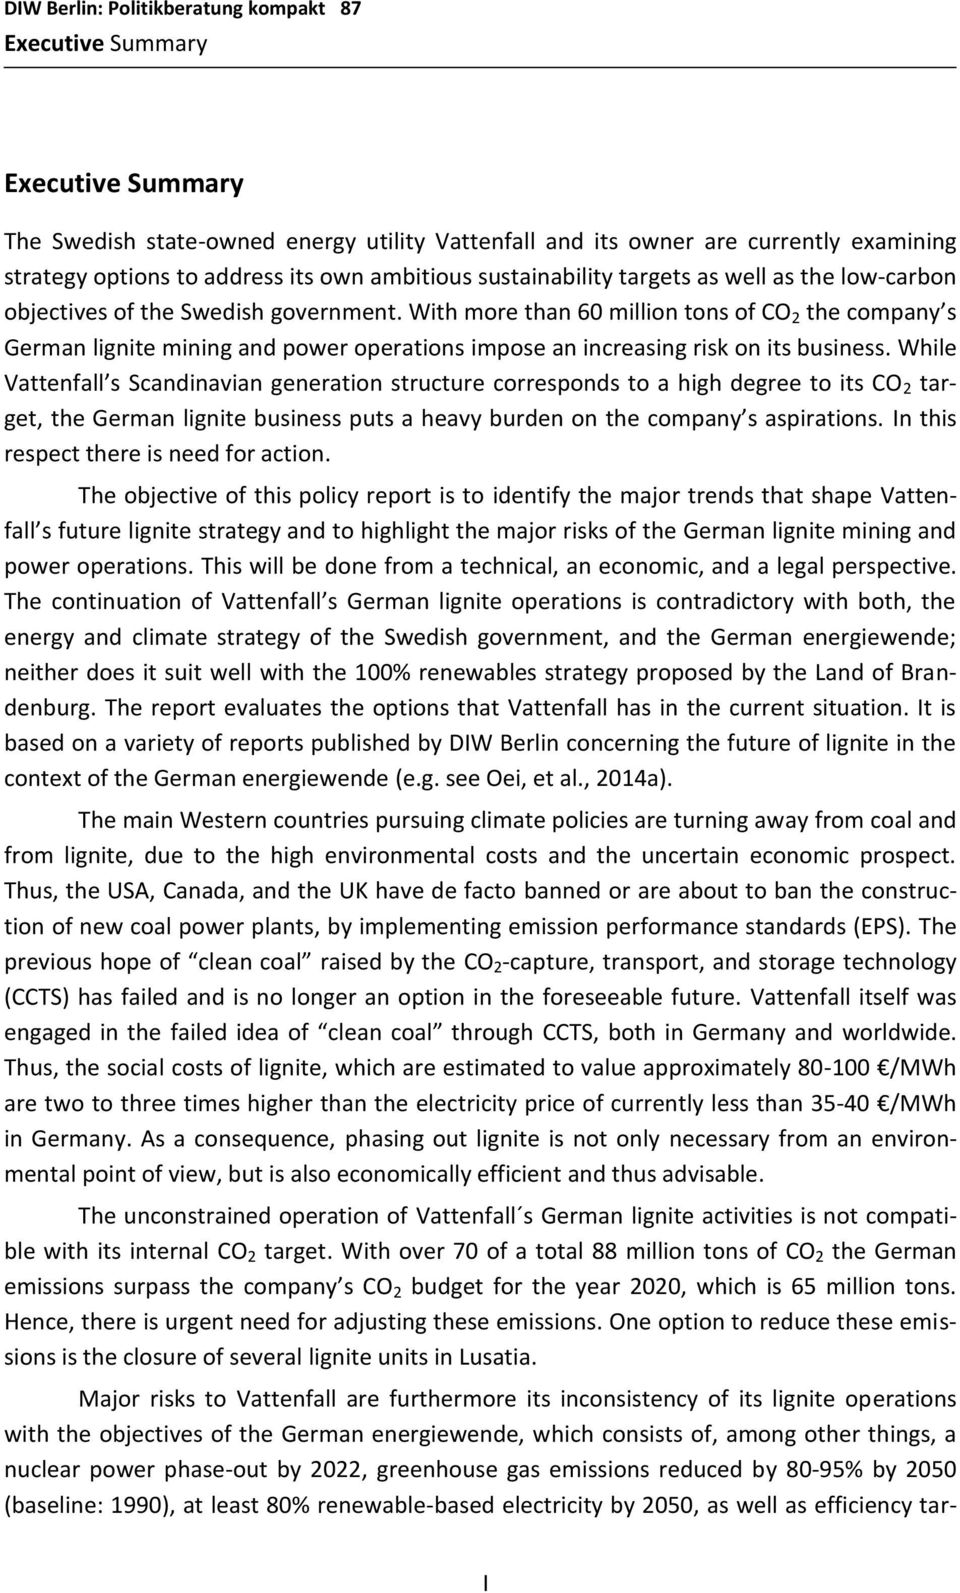 While Vattenfall s Scandinavian generation structure corresponds to a high degree to its CO 2 target, the German lignite business puts a heavy burden on the company s aspirations.